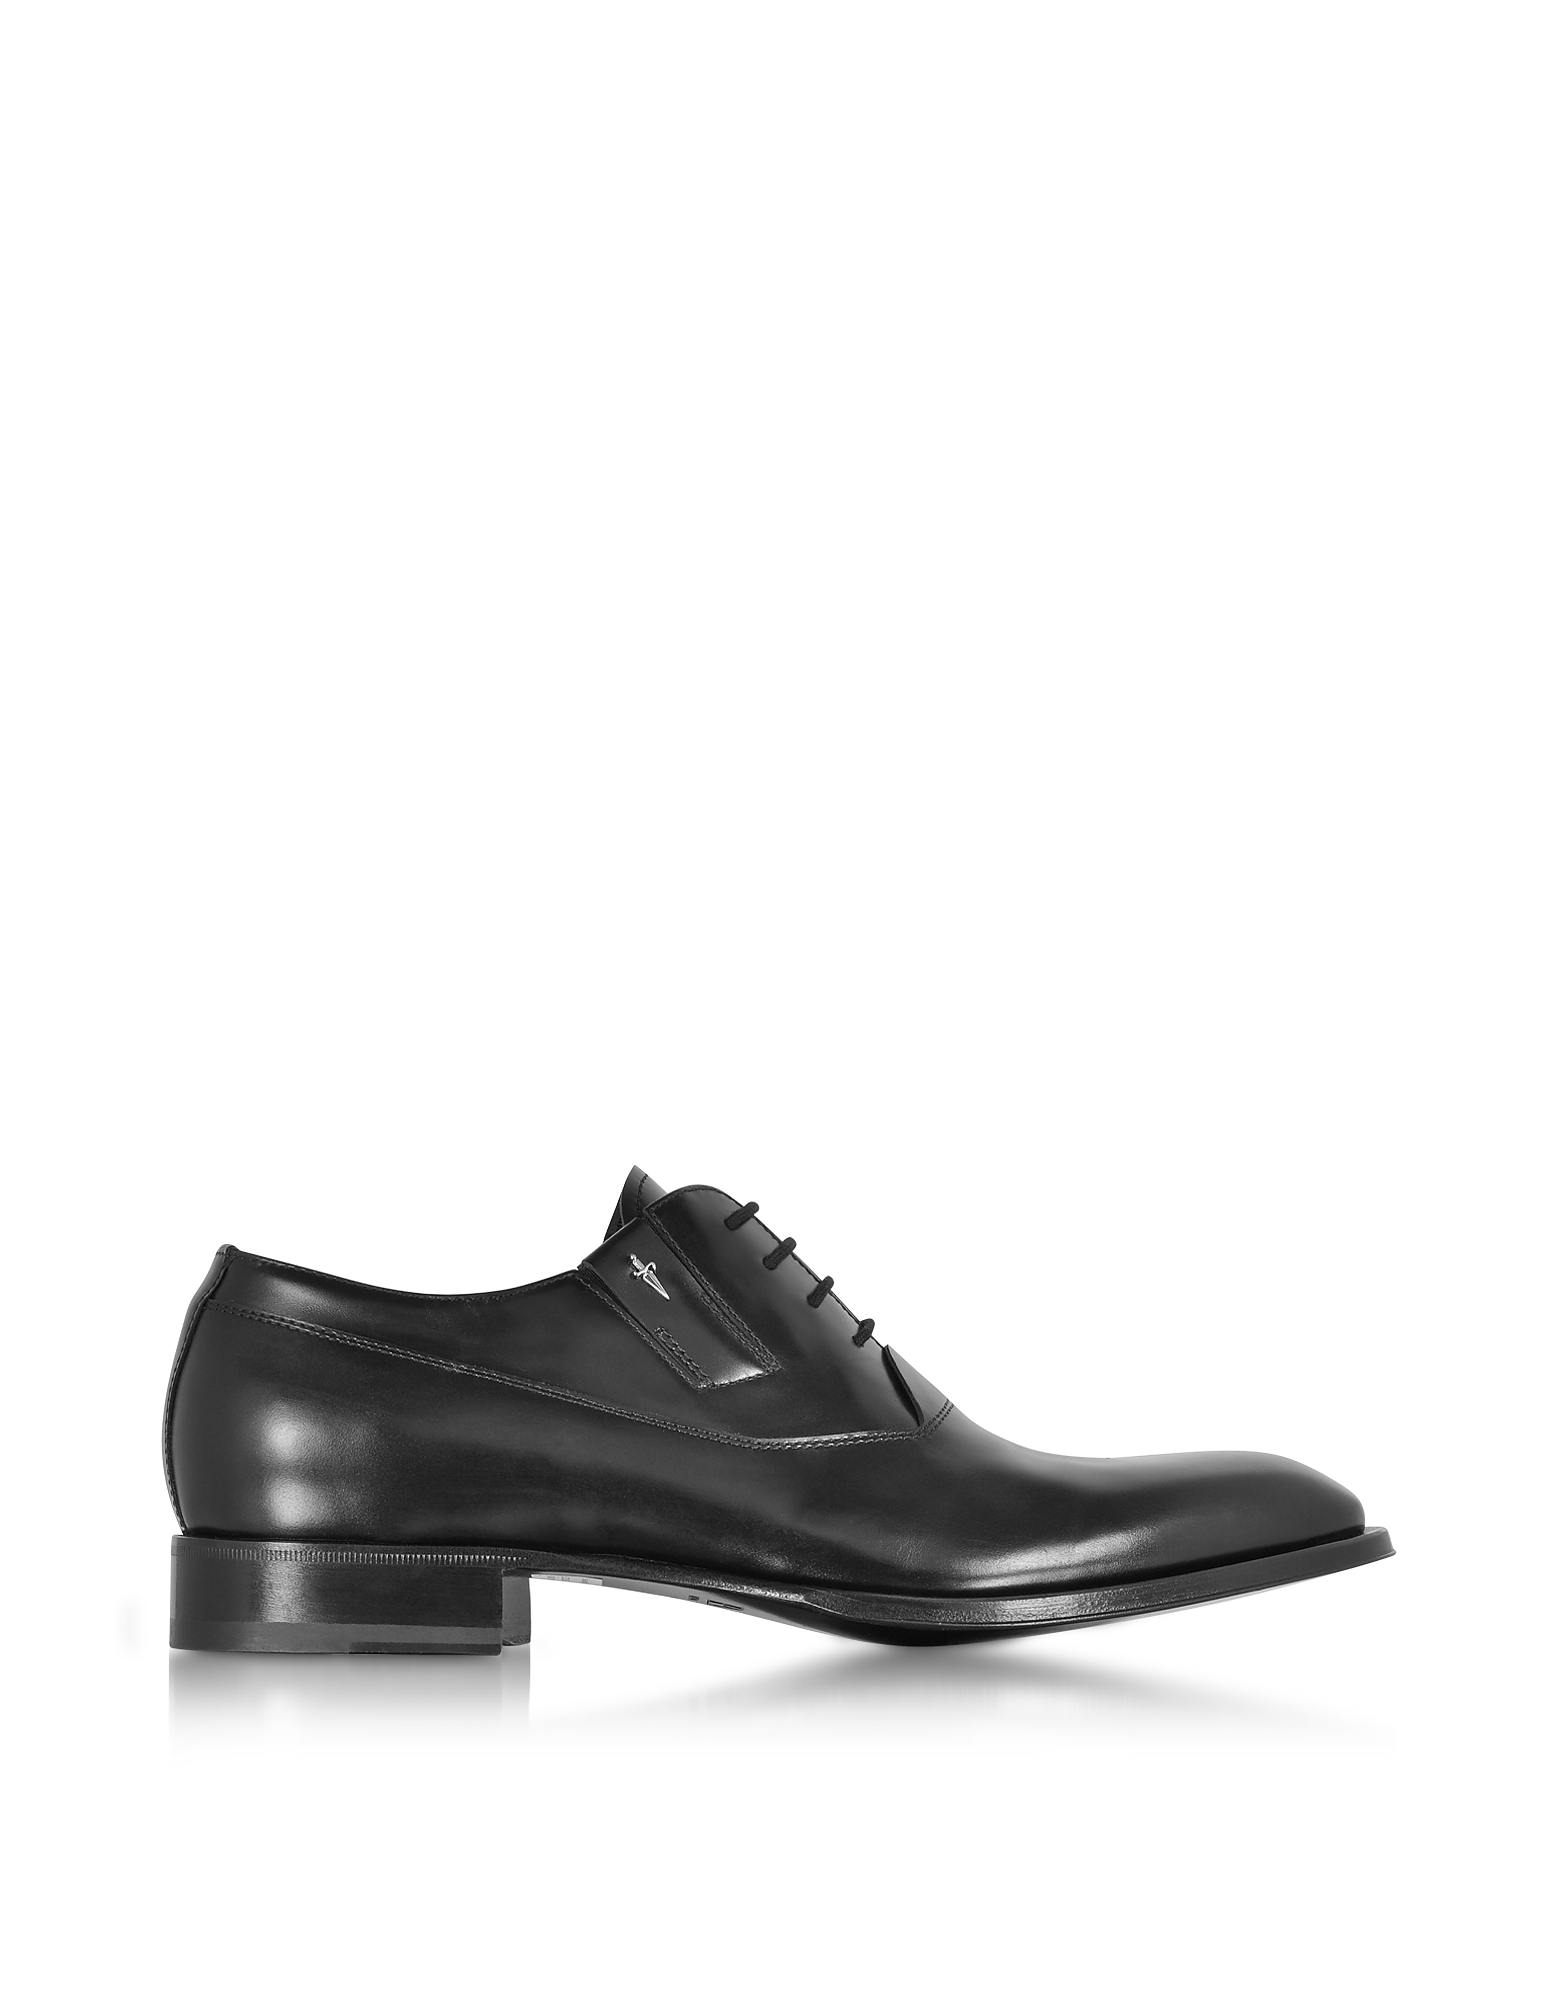 Cesare Paciotti Shoes, Black Baby Horse Leather Oxford Shoes